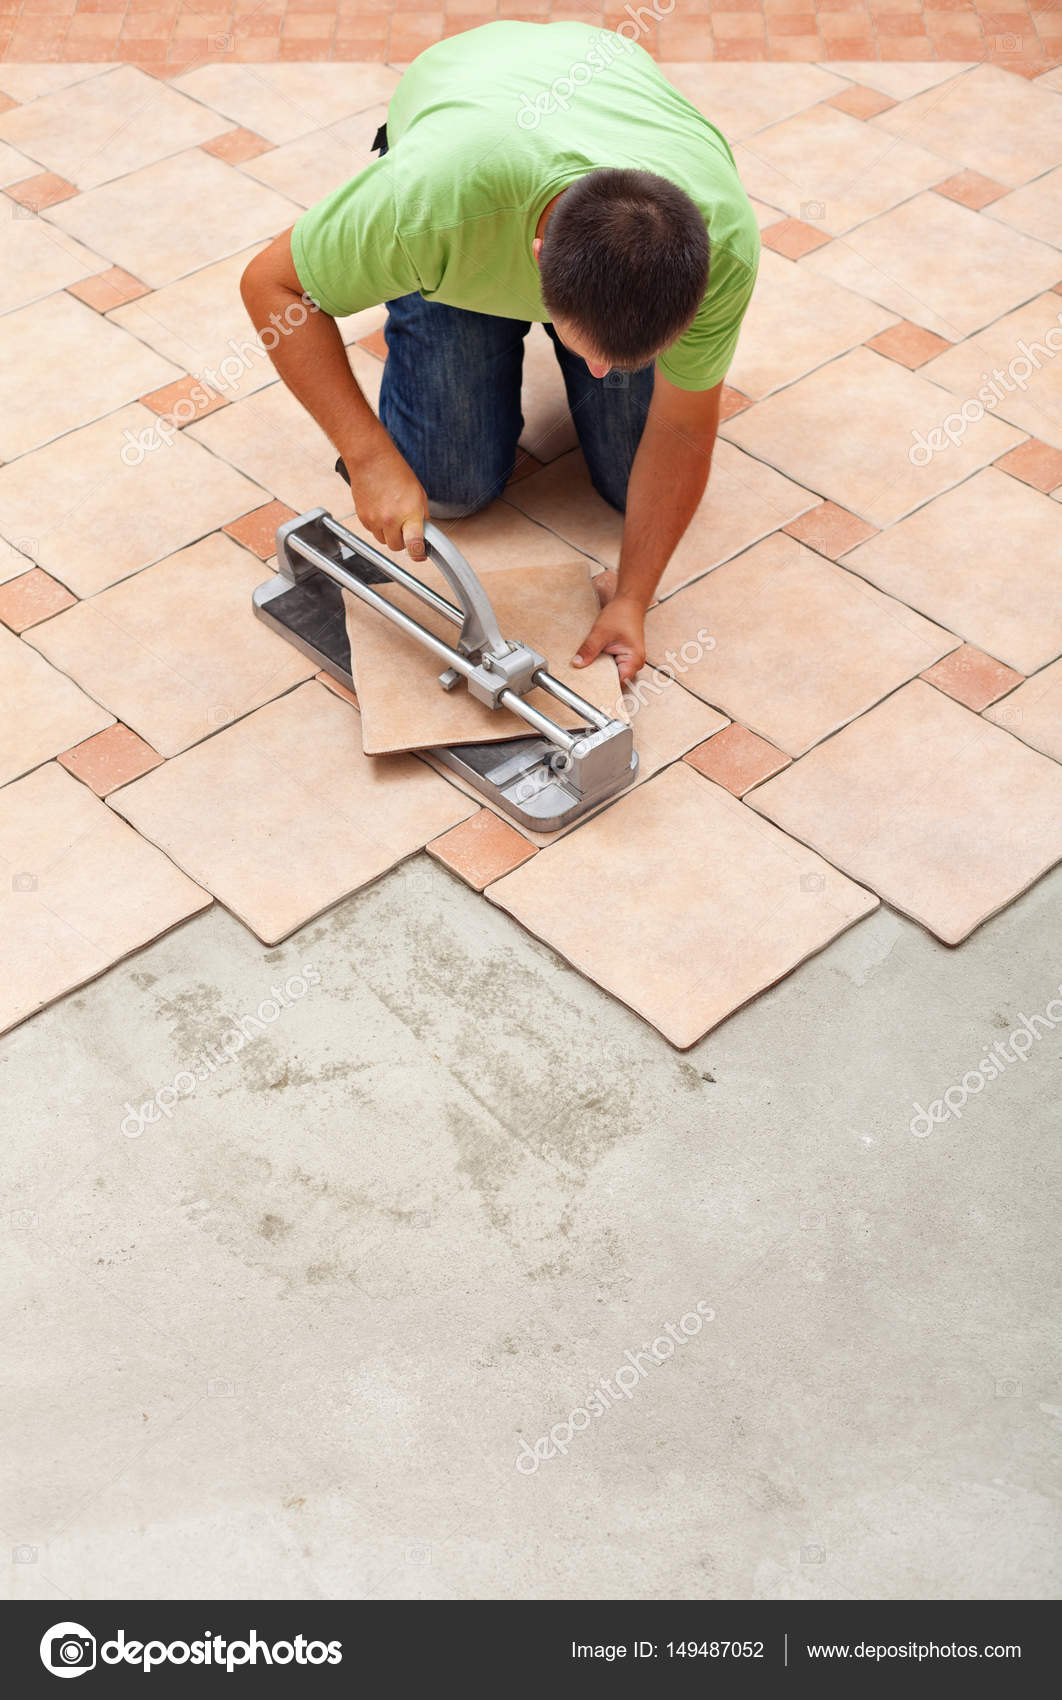 How to ceramic tile floor